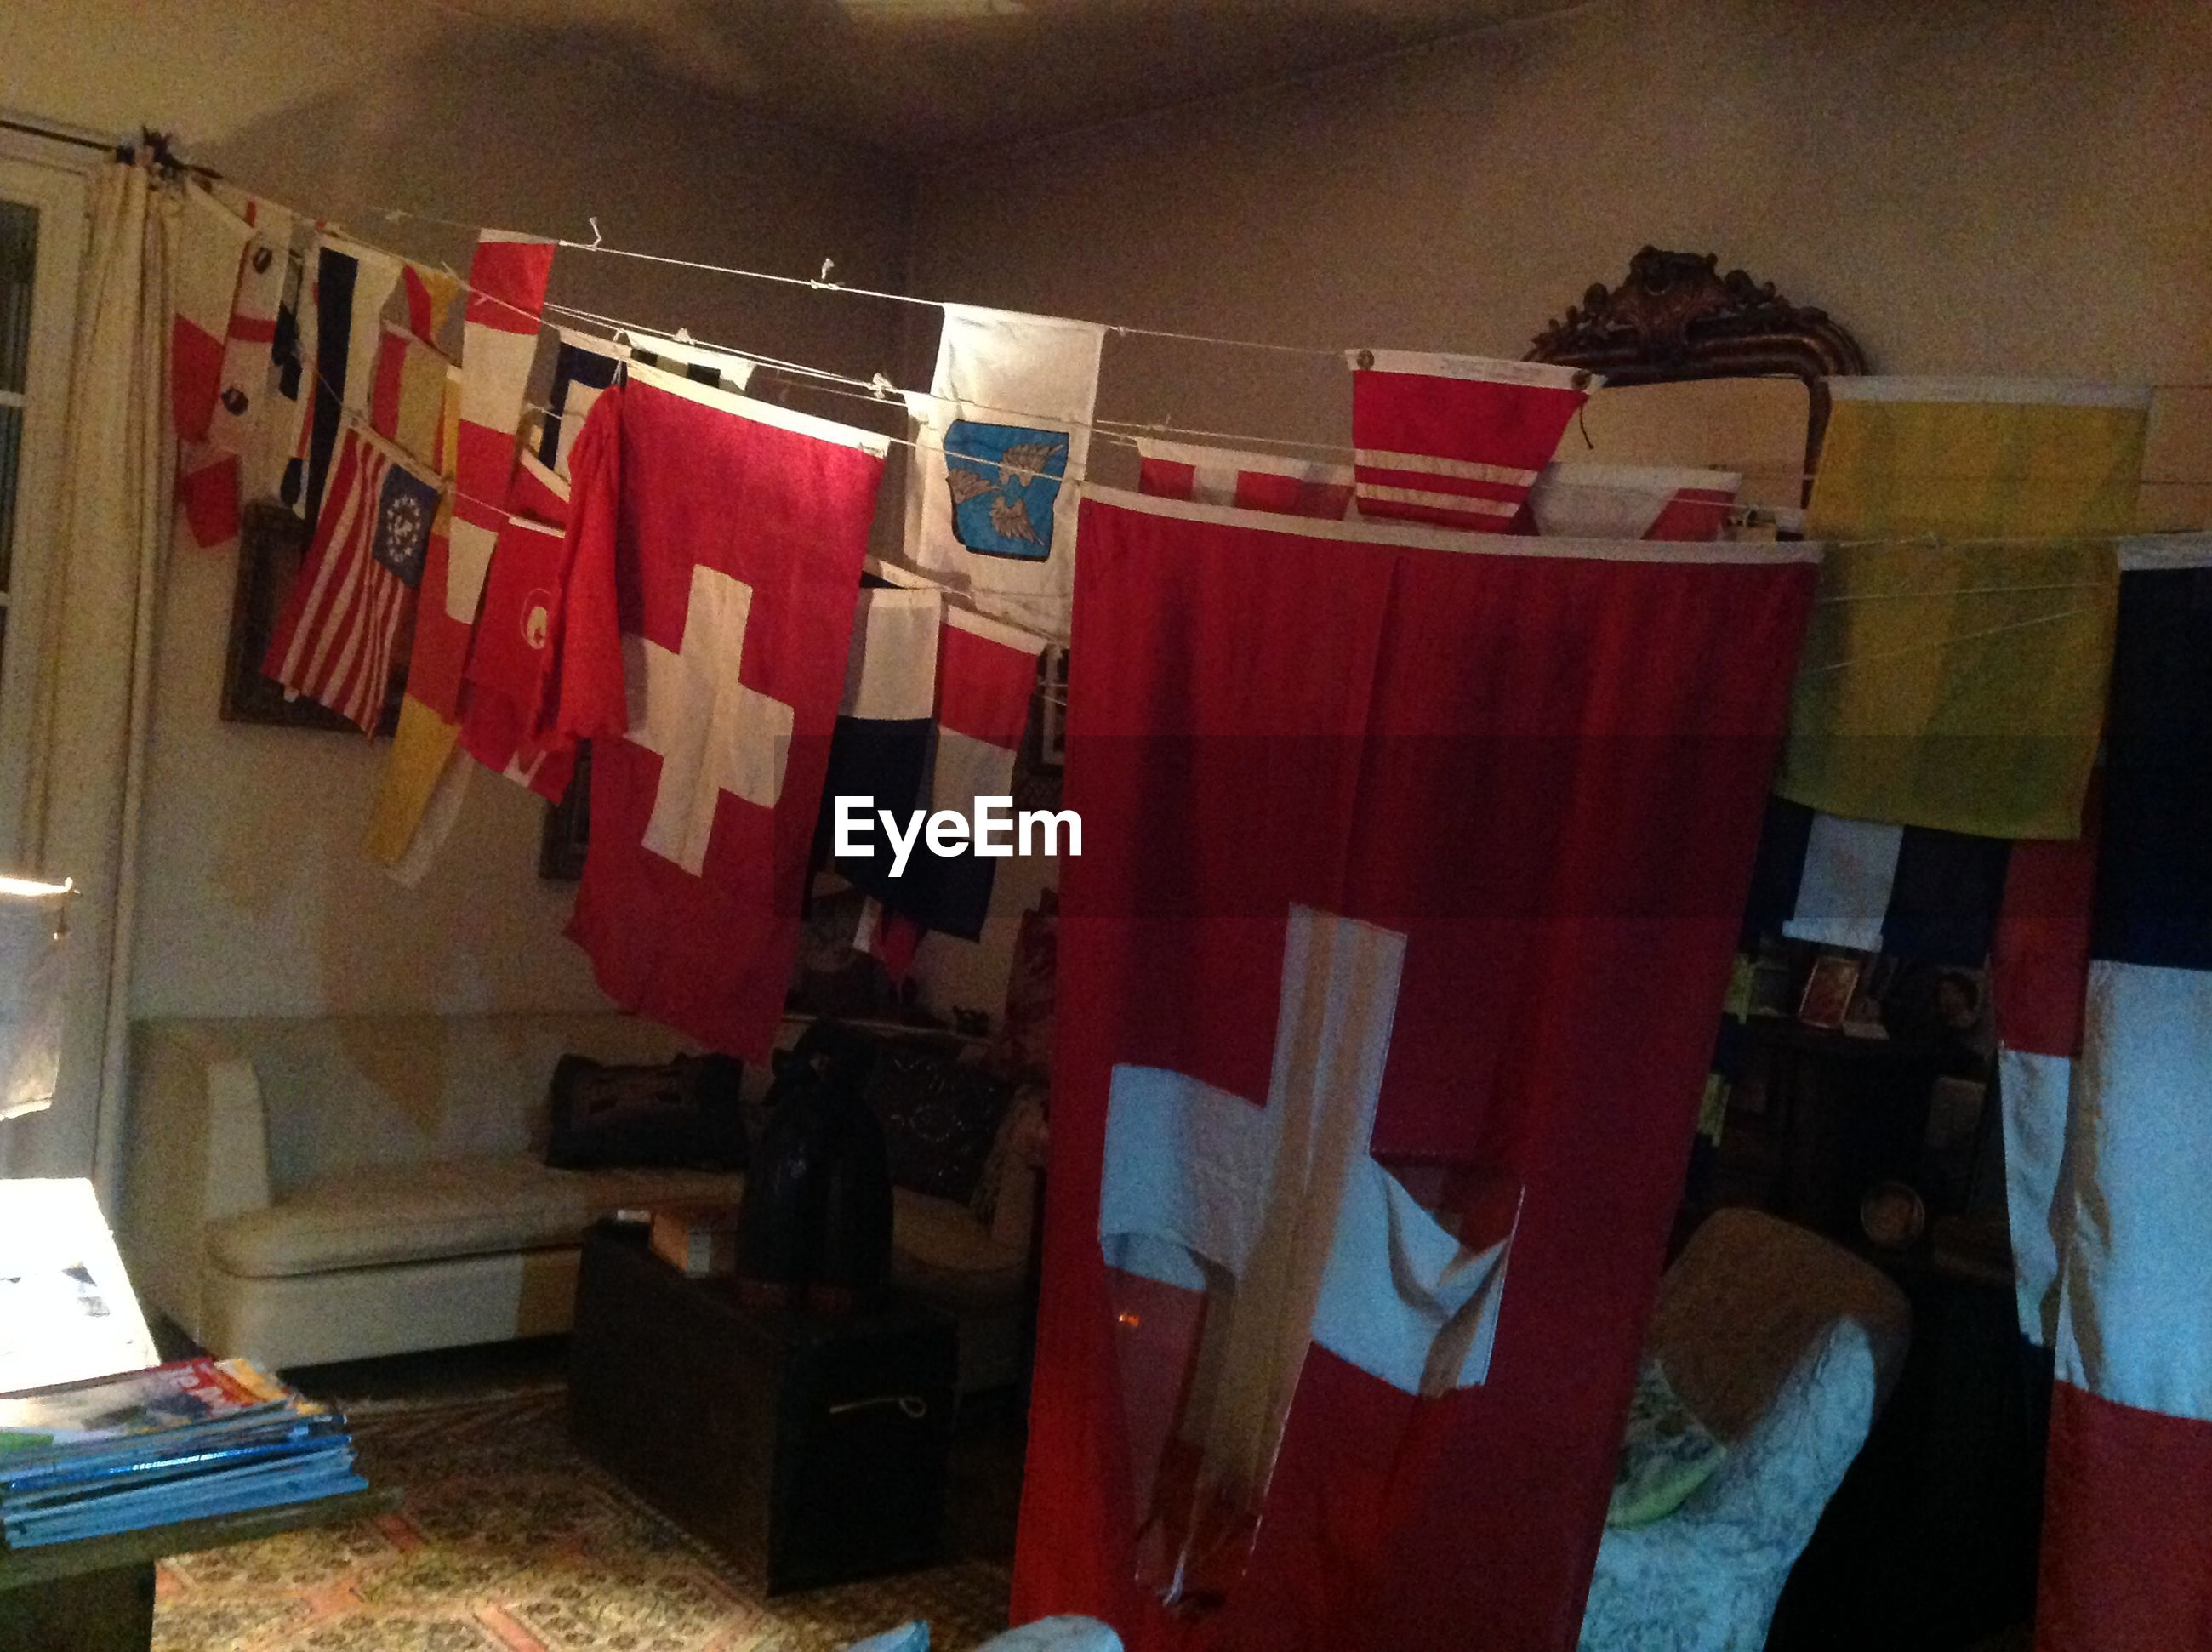 Flags hanging on clothesline in room